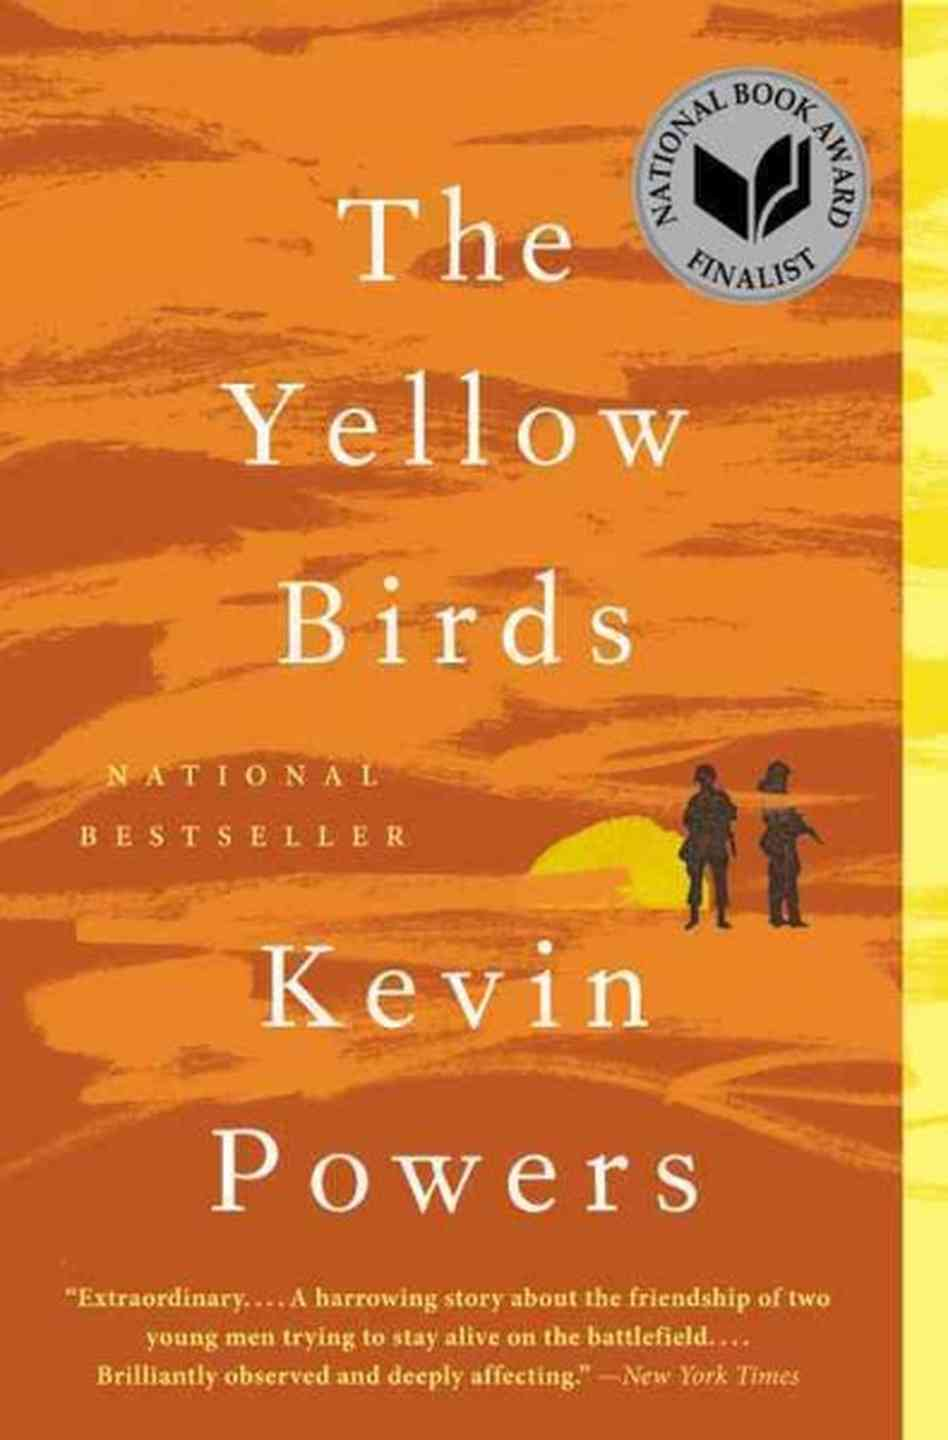 2013 – Kevin Powers